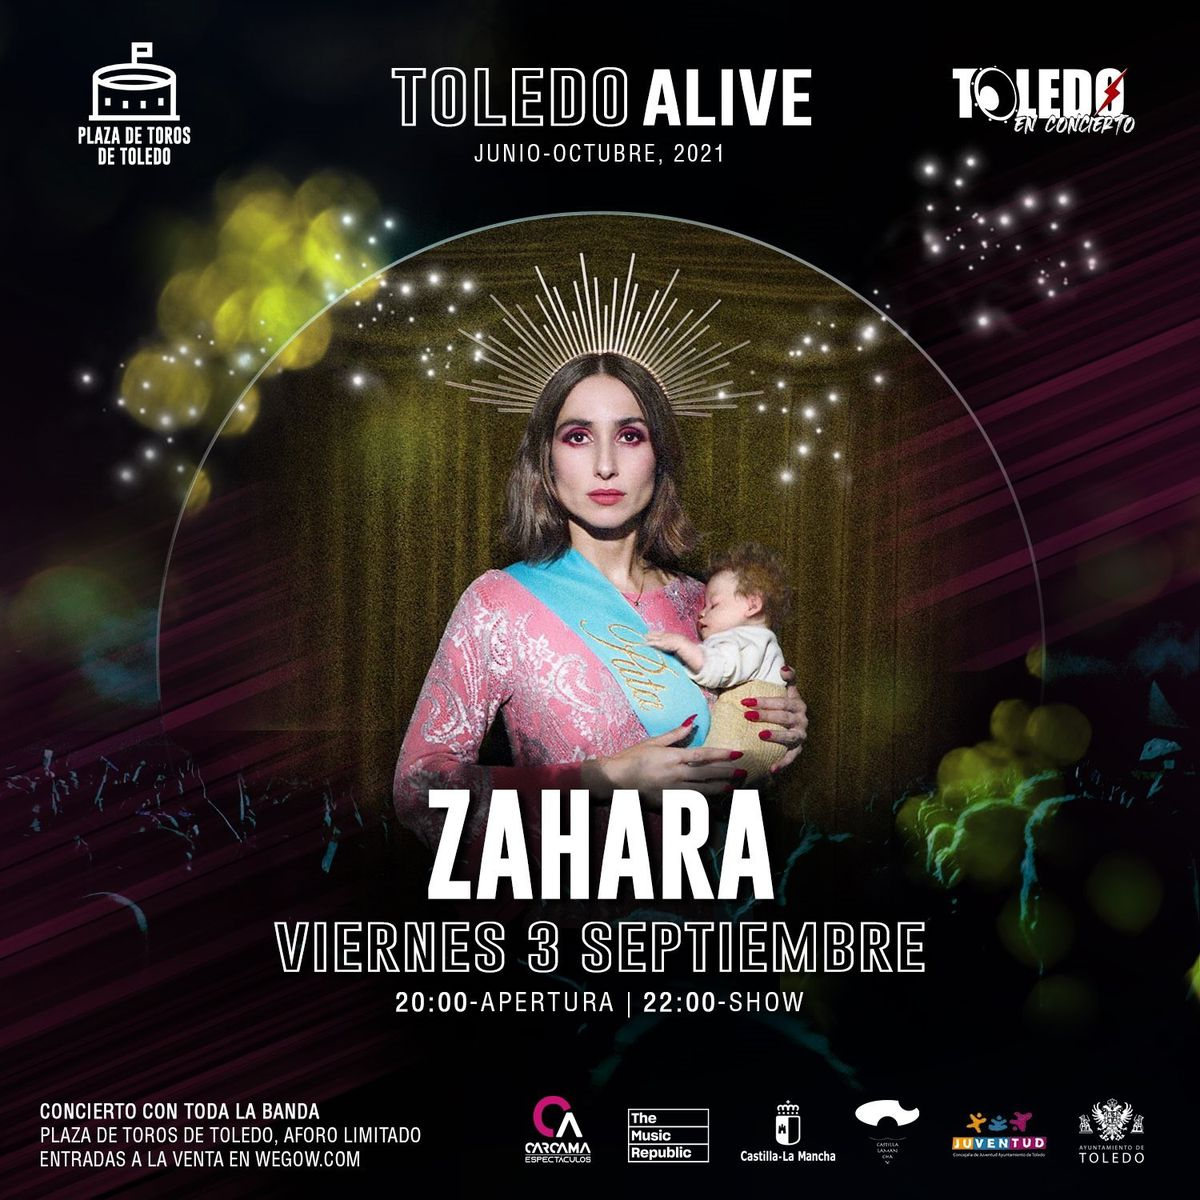 Musicians and politicians support Zahara after the withdrawal of the poster from his concert in Toledo due to pressure from religious and political groups